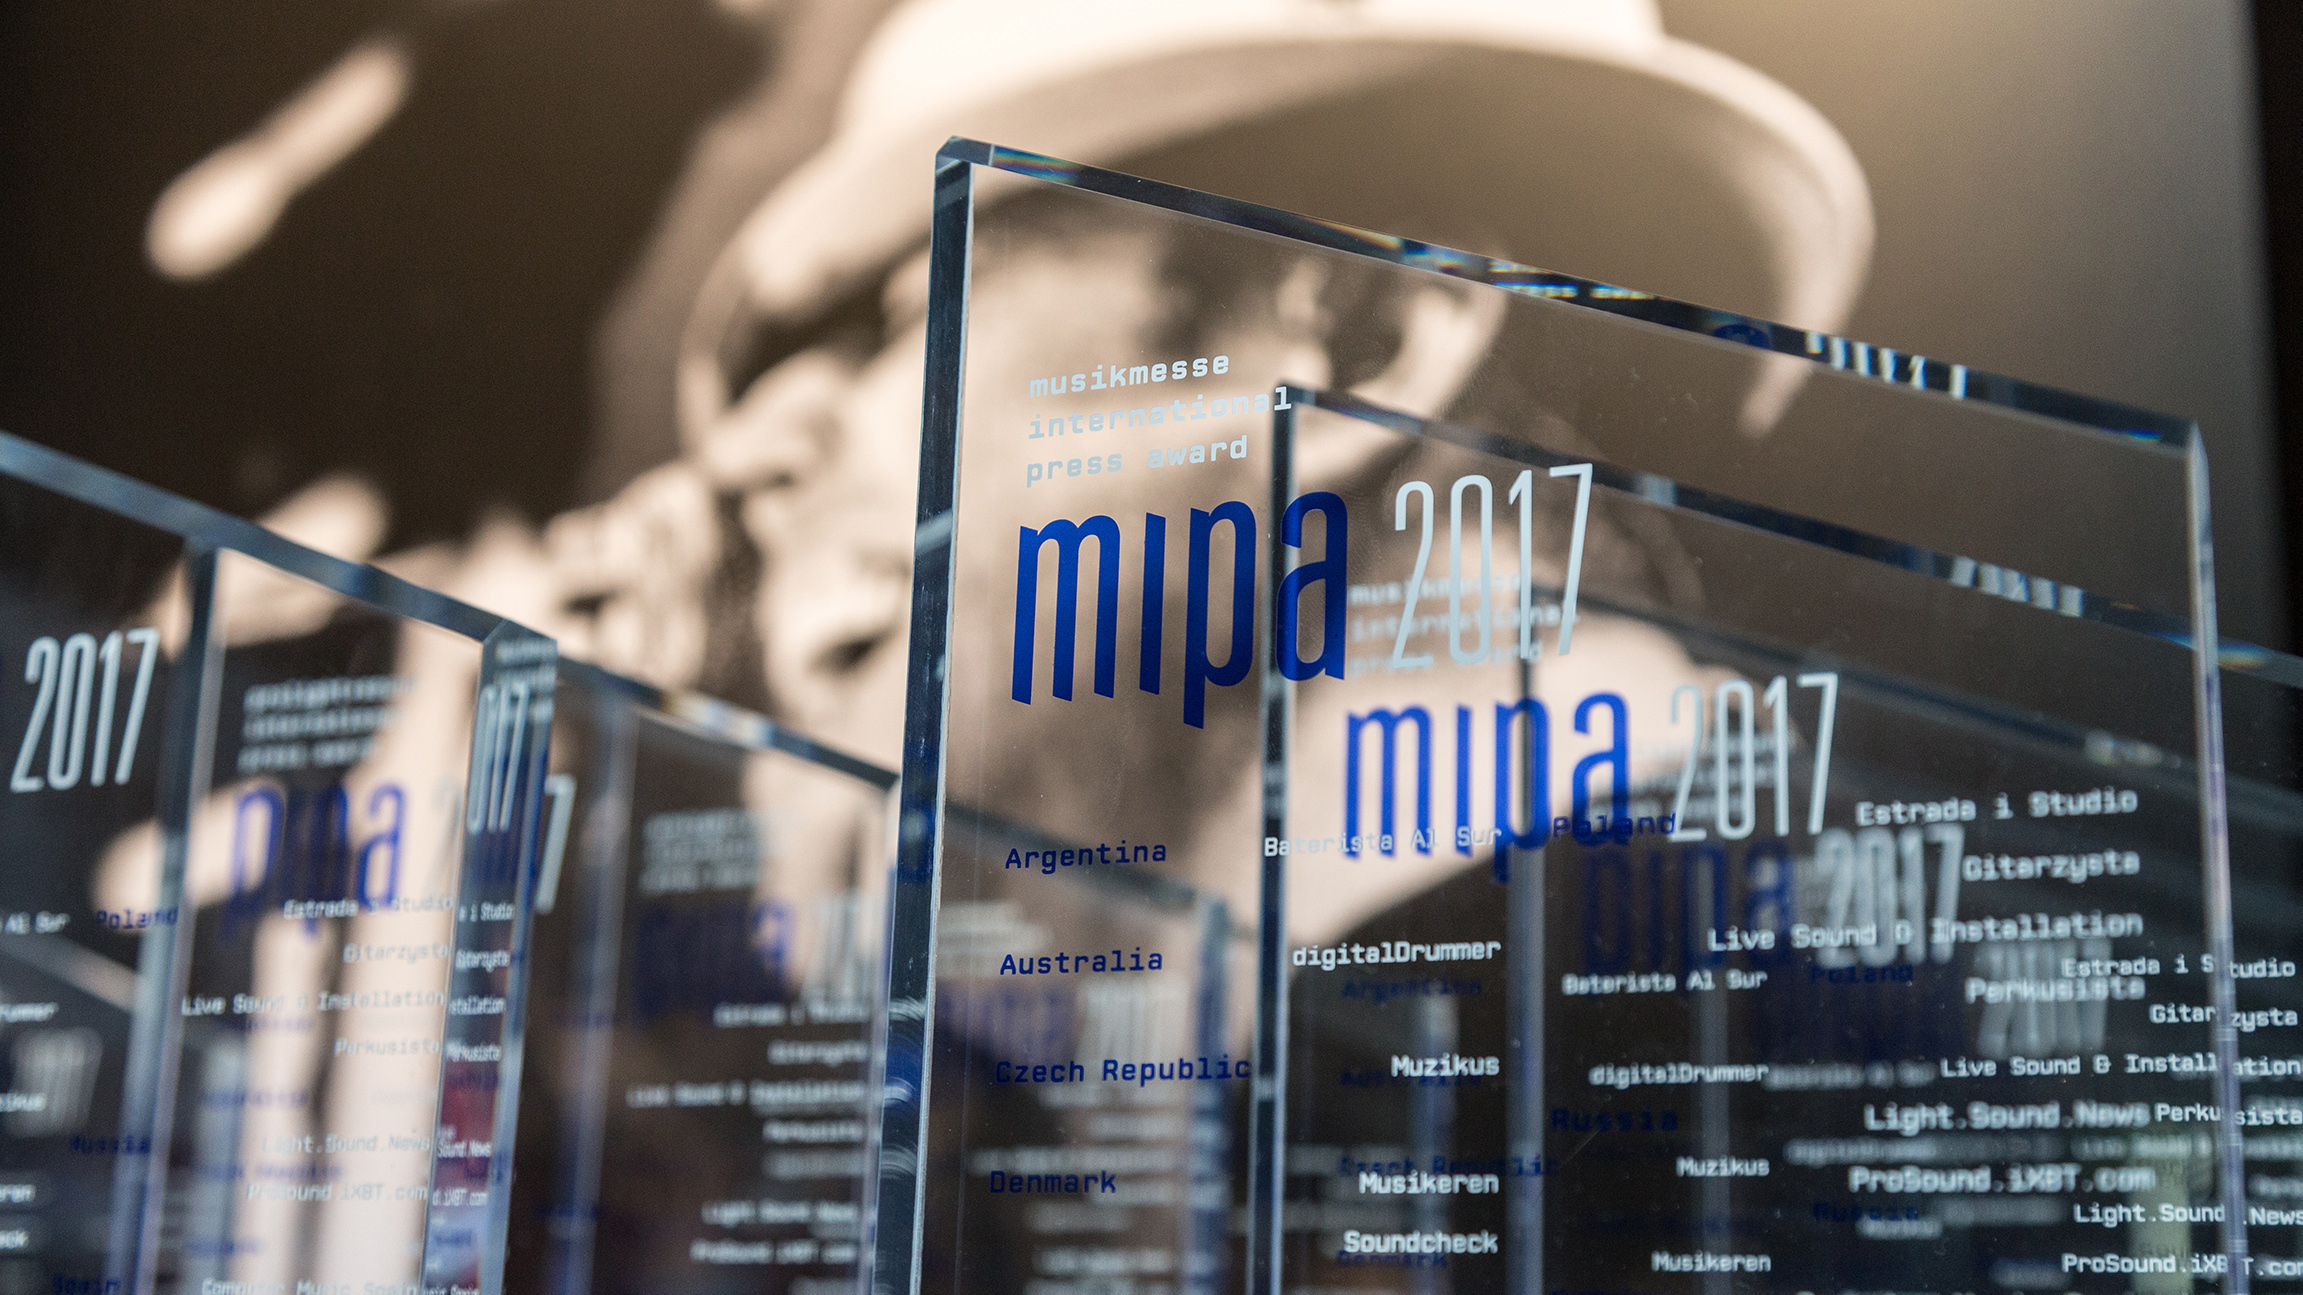 Musikmesse International Press Award (MIPA)